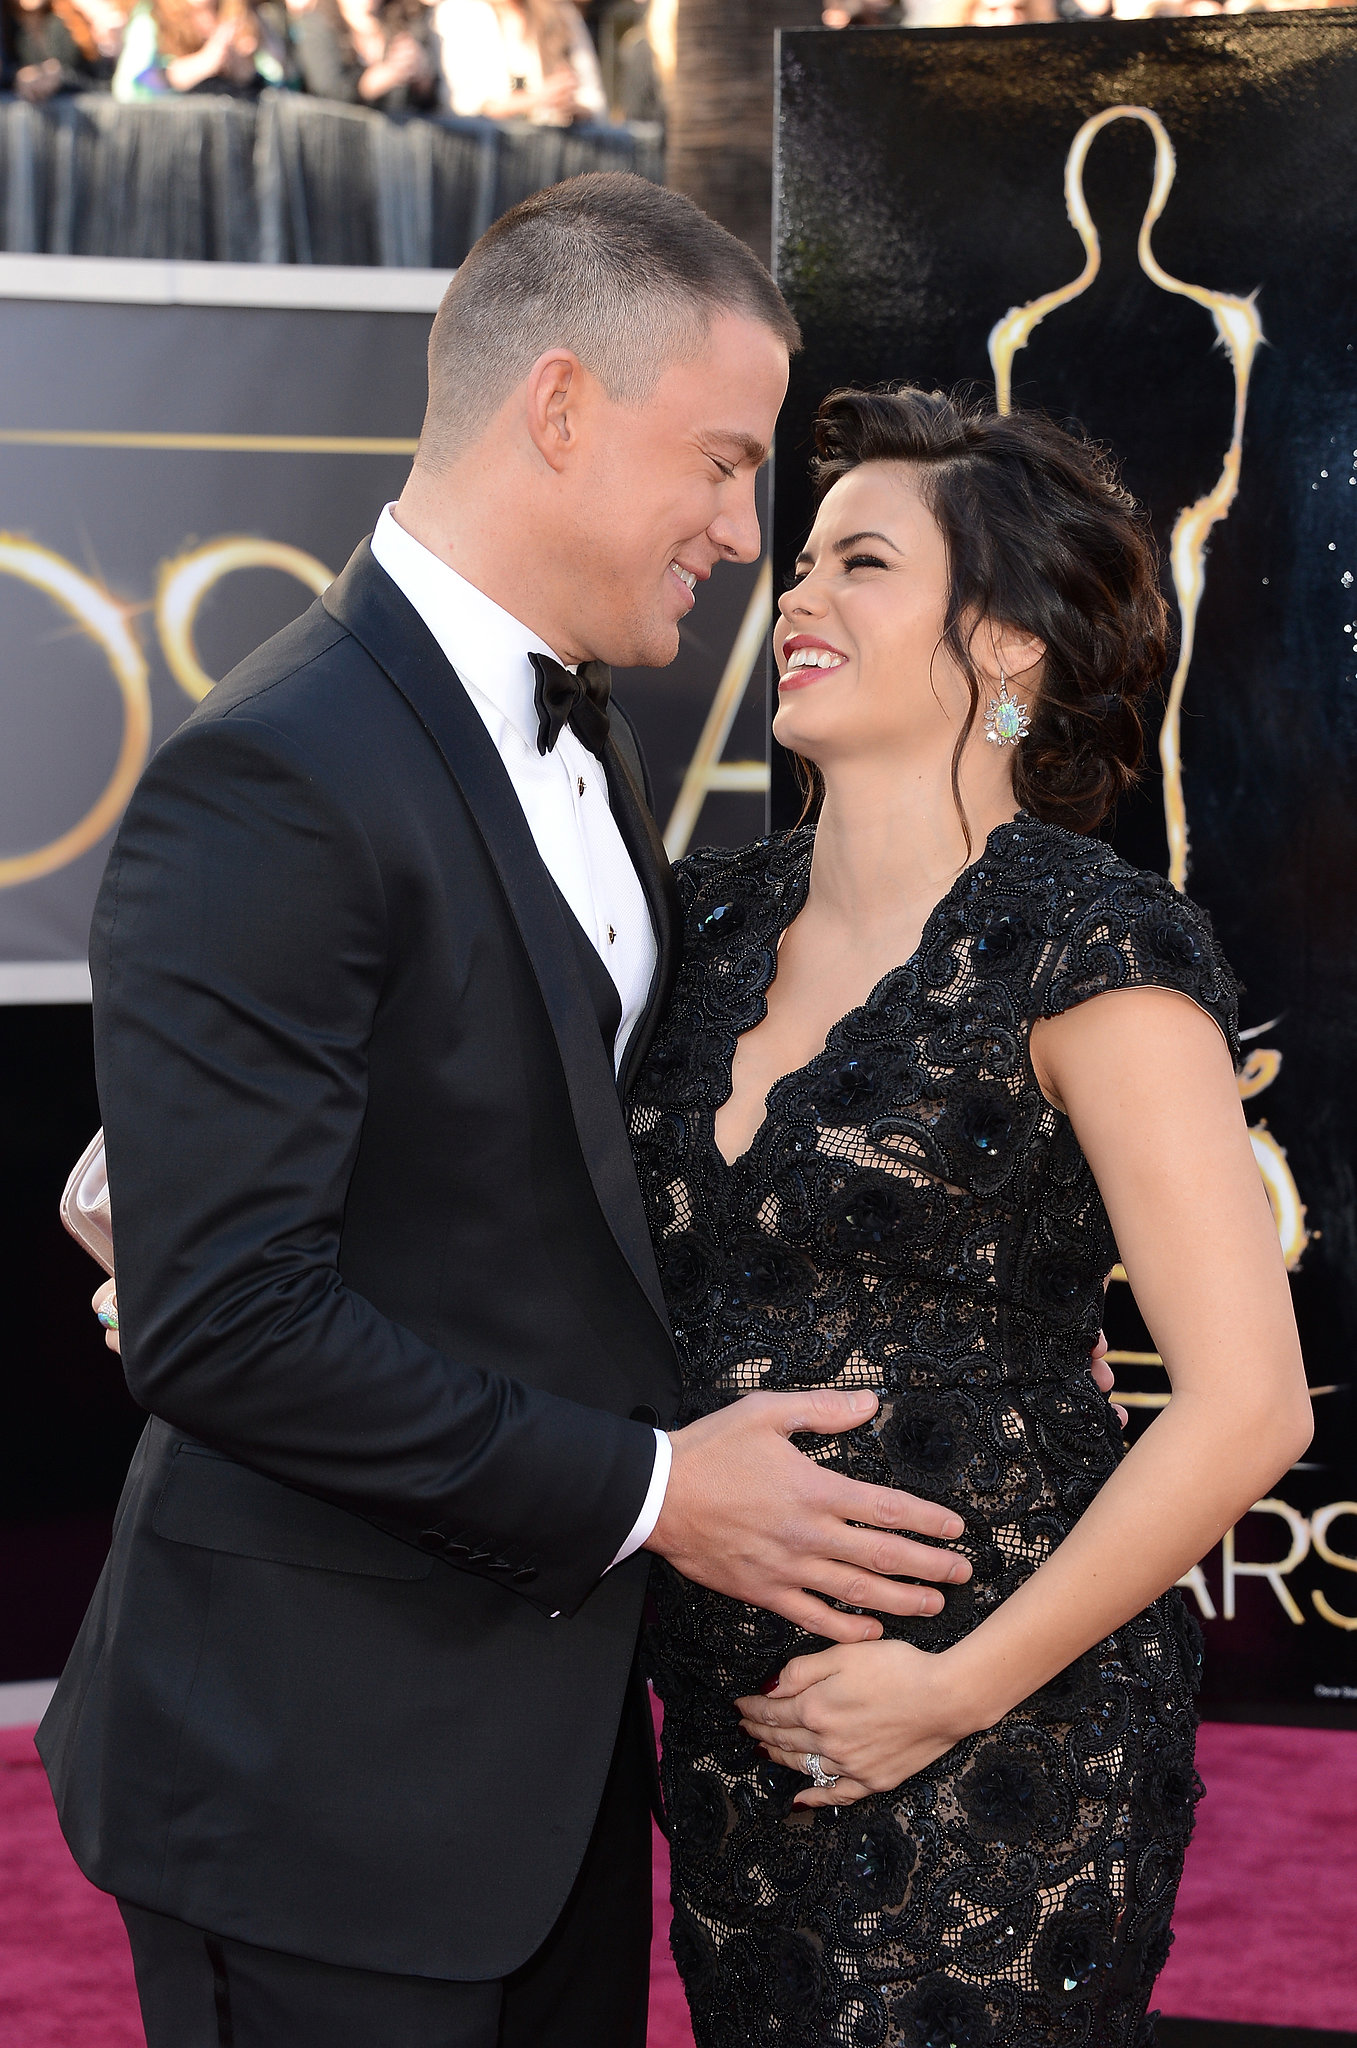 Channing and a pregnant Jenna looked loved up on the red carpet at the Oscars in February 2013.